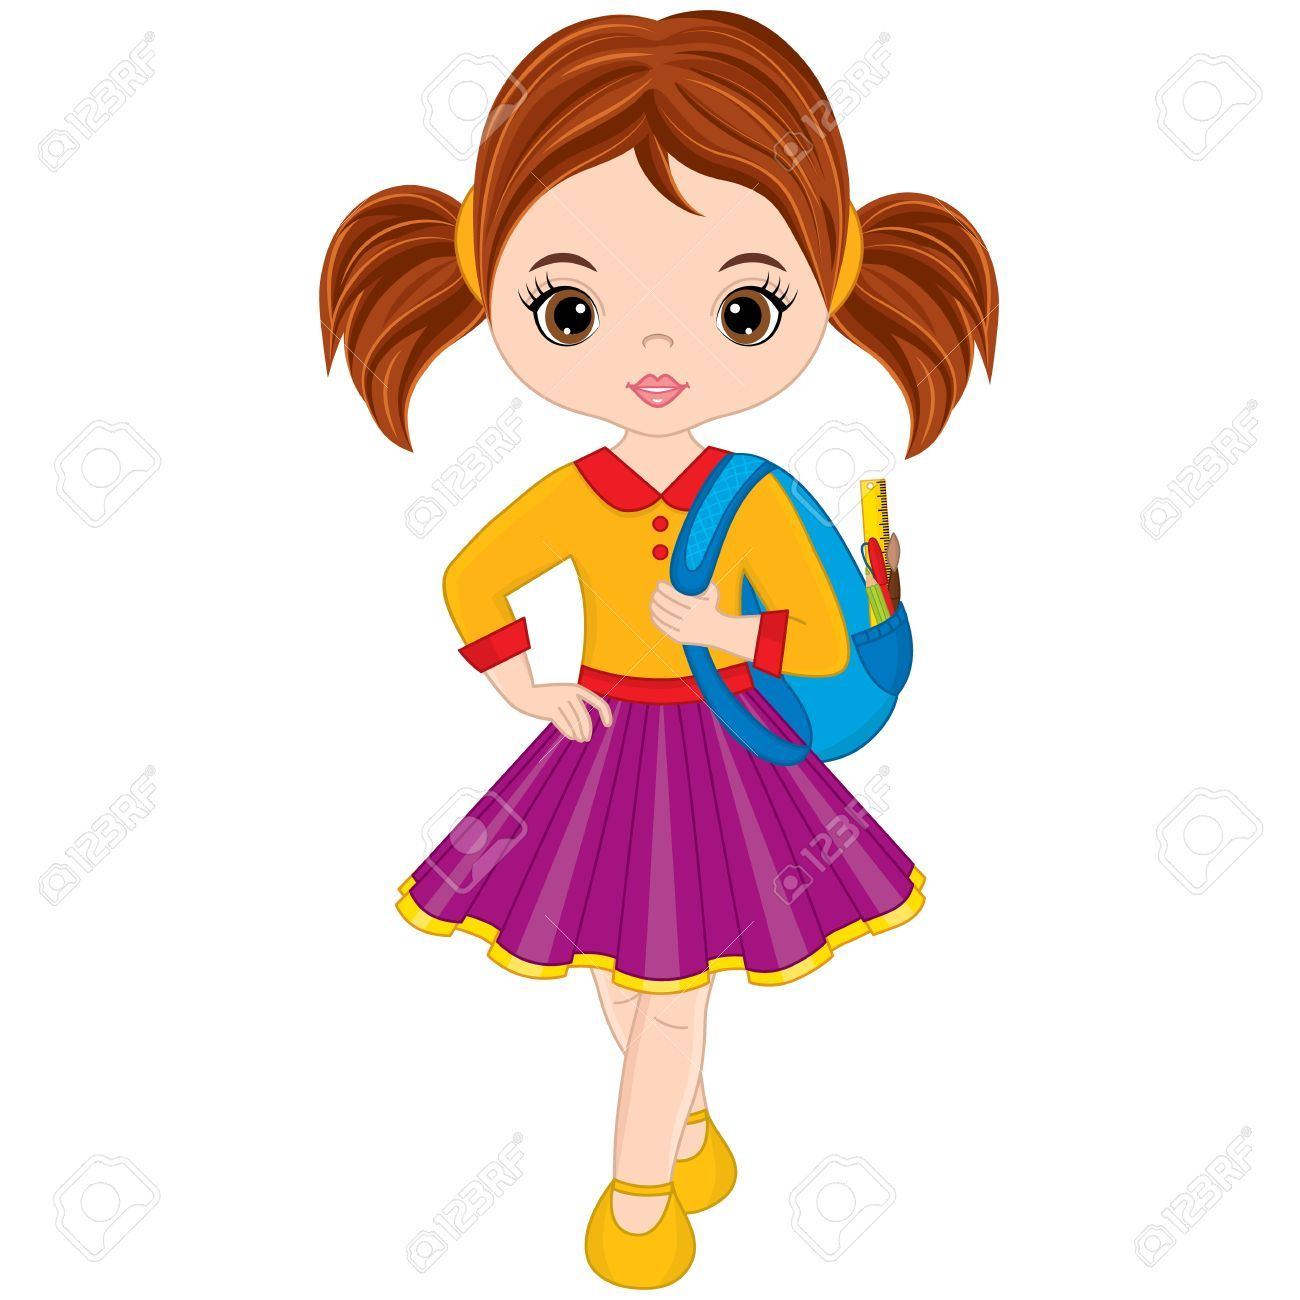 Little girl clipart clipart freeuse stock Cute little girl clipart 6 » Clipart Portal clipart freeuse stock